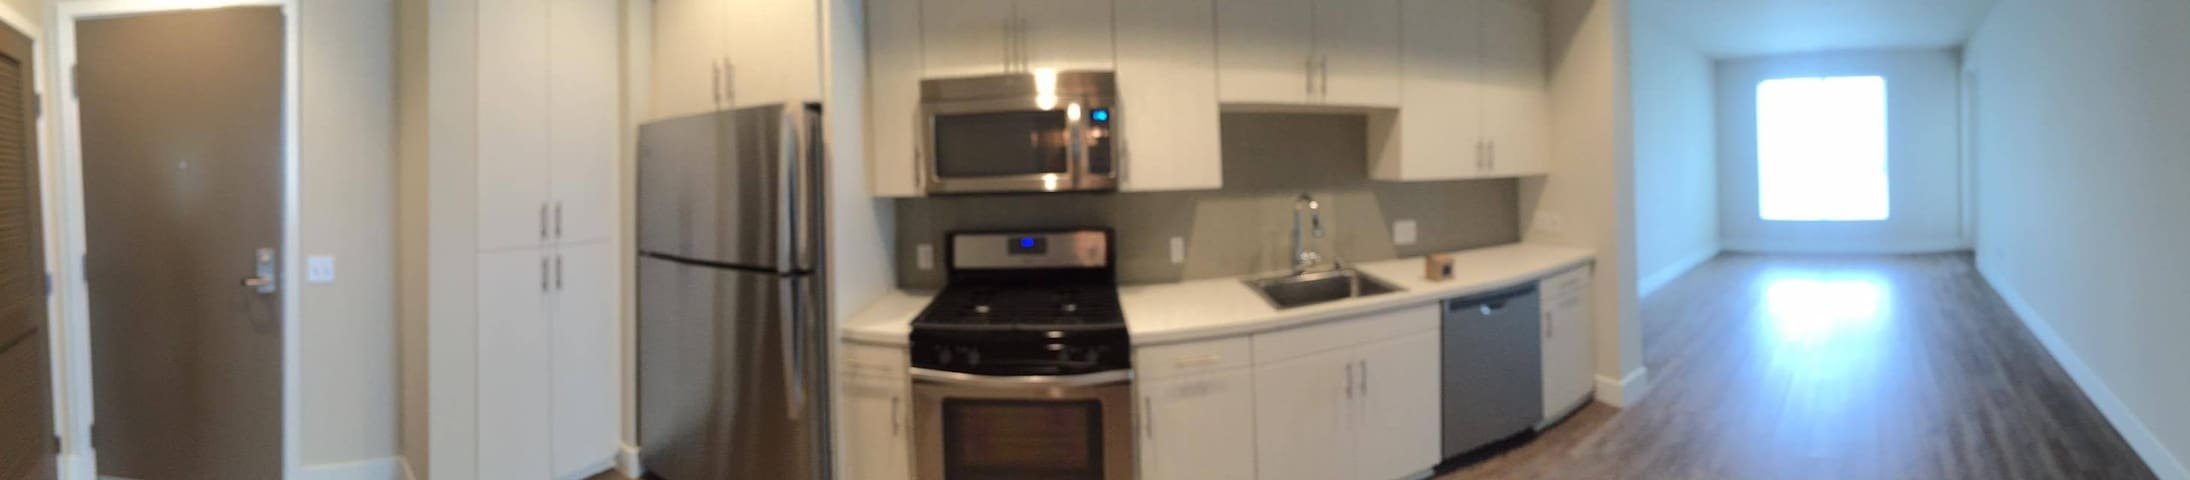 Modern, New and Comfortable Living Space! - Fullerton - Byt